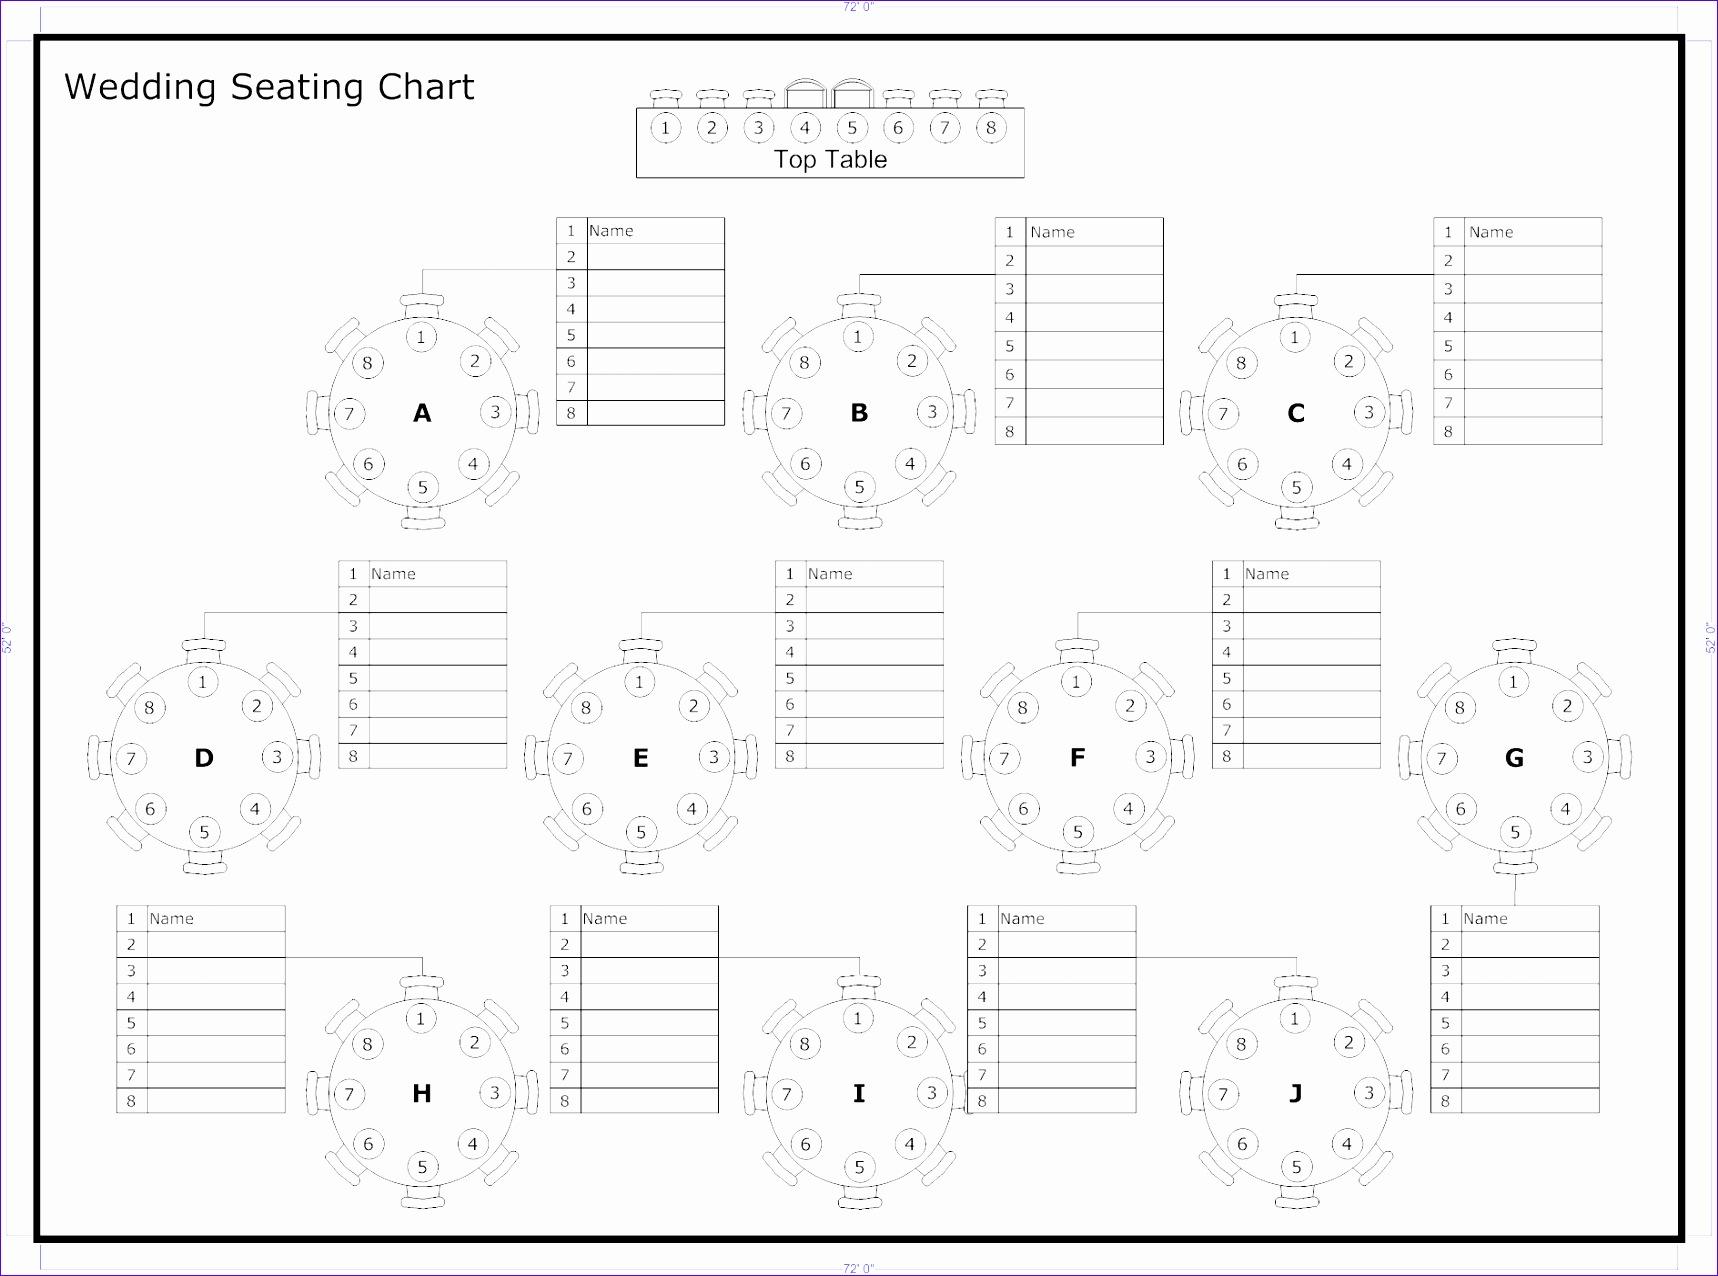 10 Seating Chart Excel Template